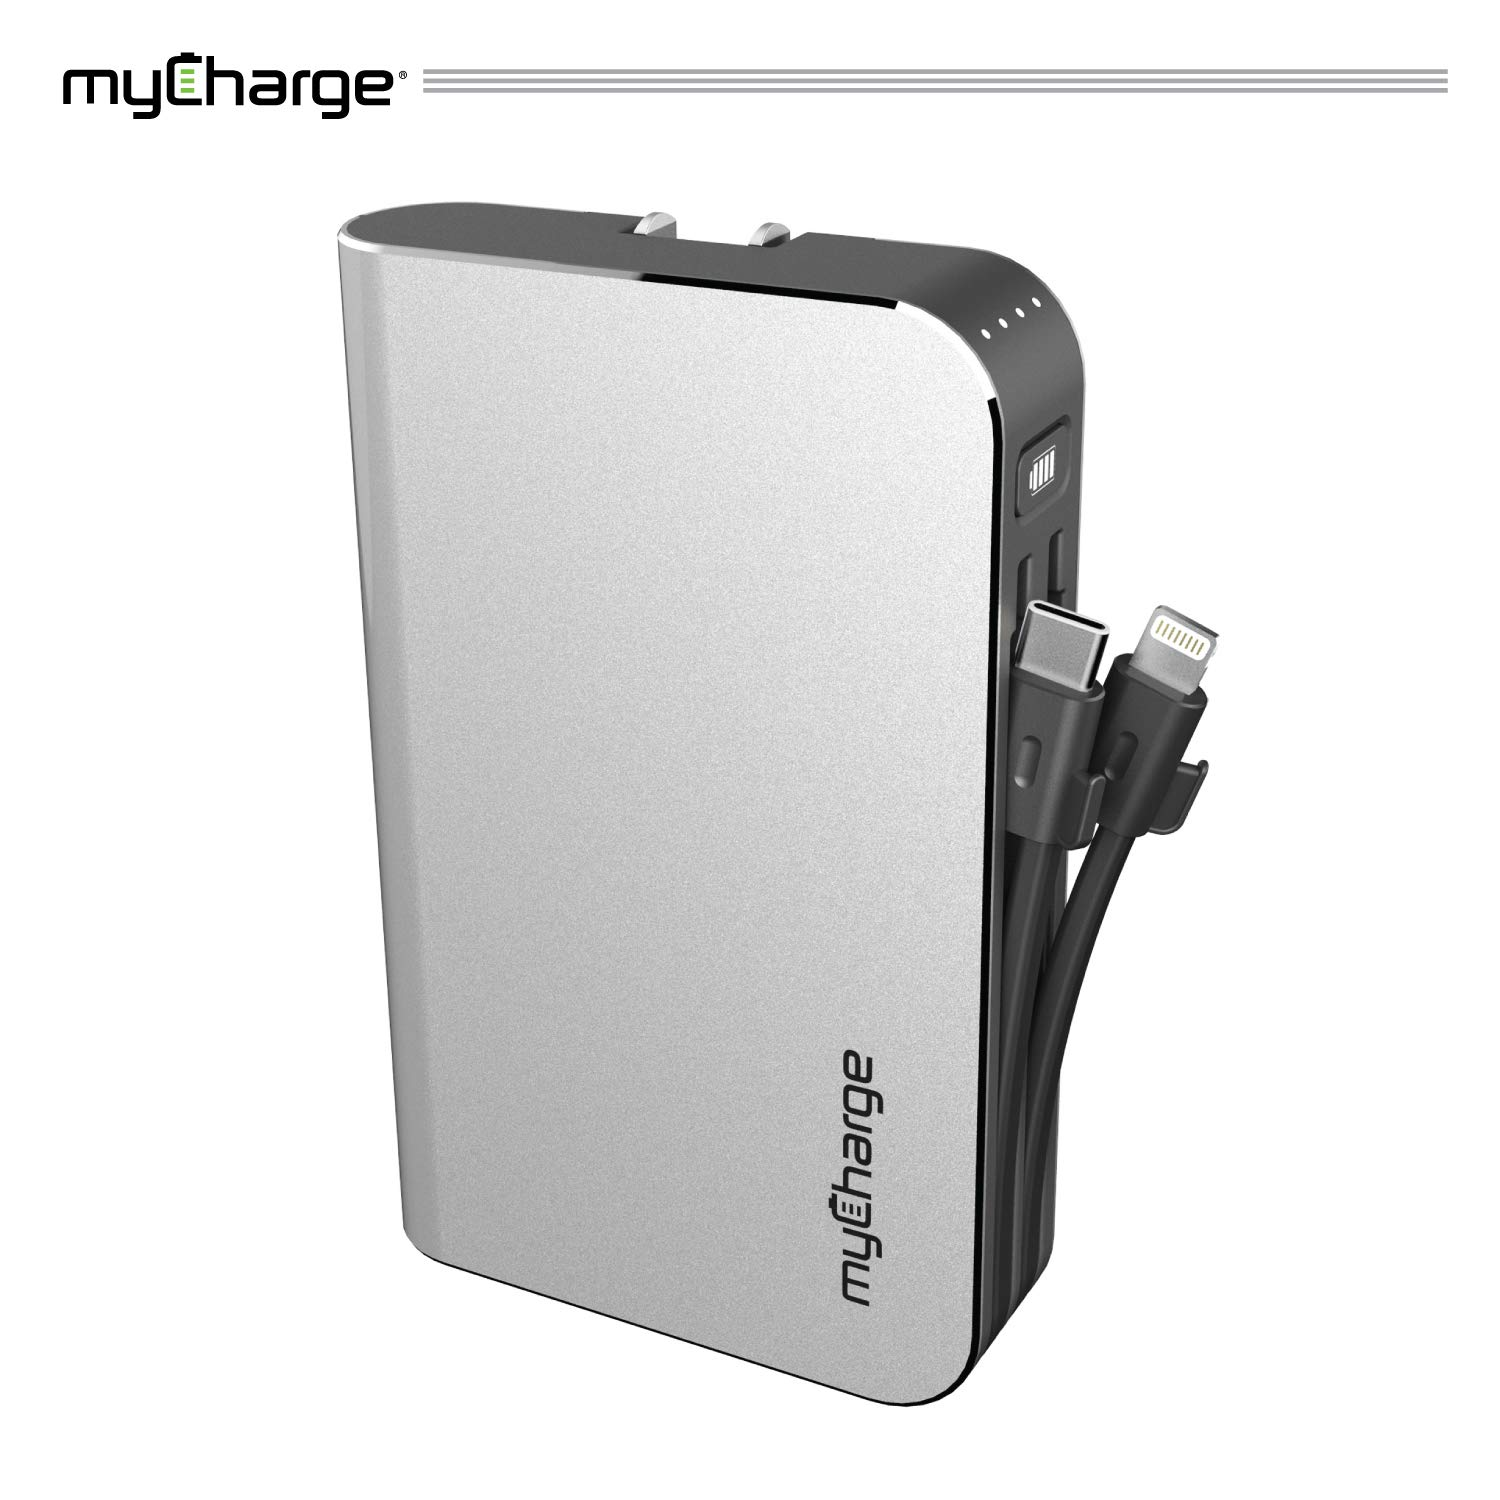 myCharge Portable Charger Power Bank - HubMax Universal 10050 mAh External Battery Pack | Wall Charger Foldable Plug | Built in Cables (iPhone Charger Lightning Cable and Android Samsung USB C) by myCharge